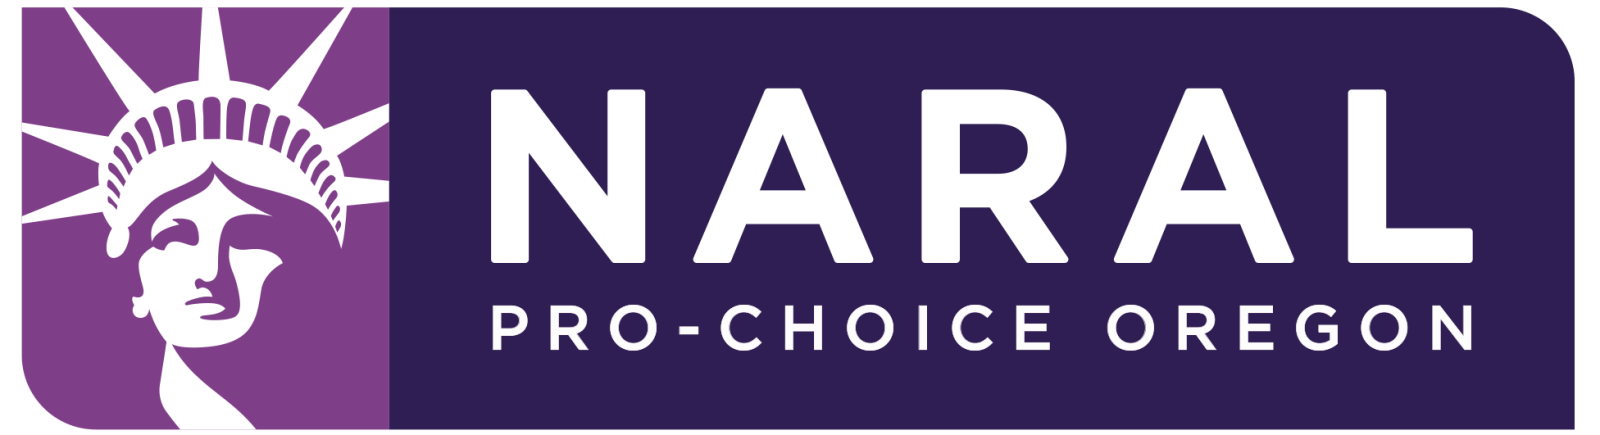 Pro-Choice Oregon